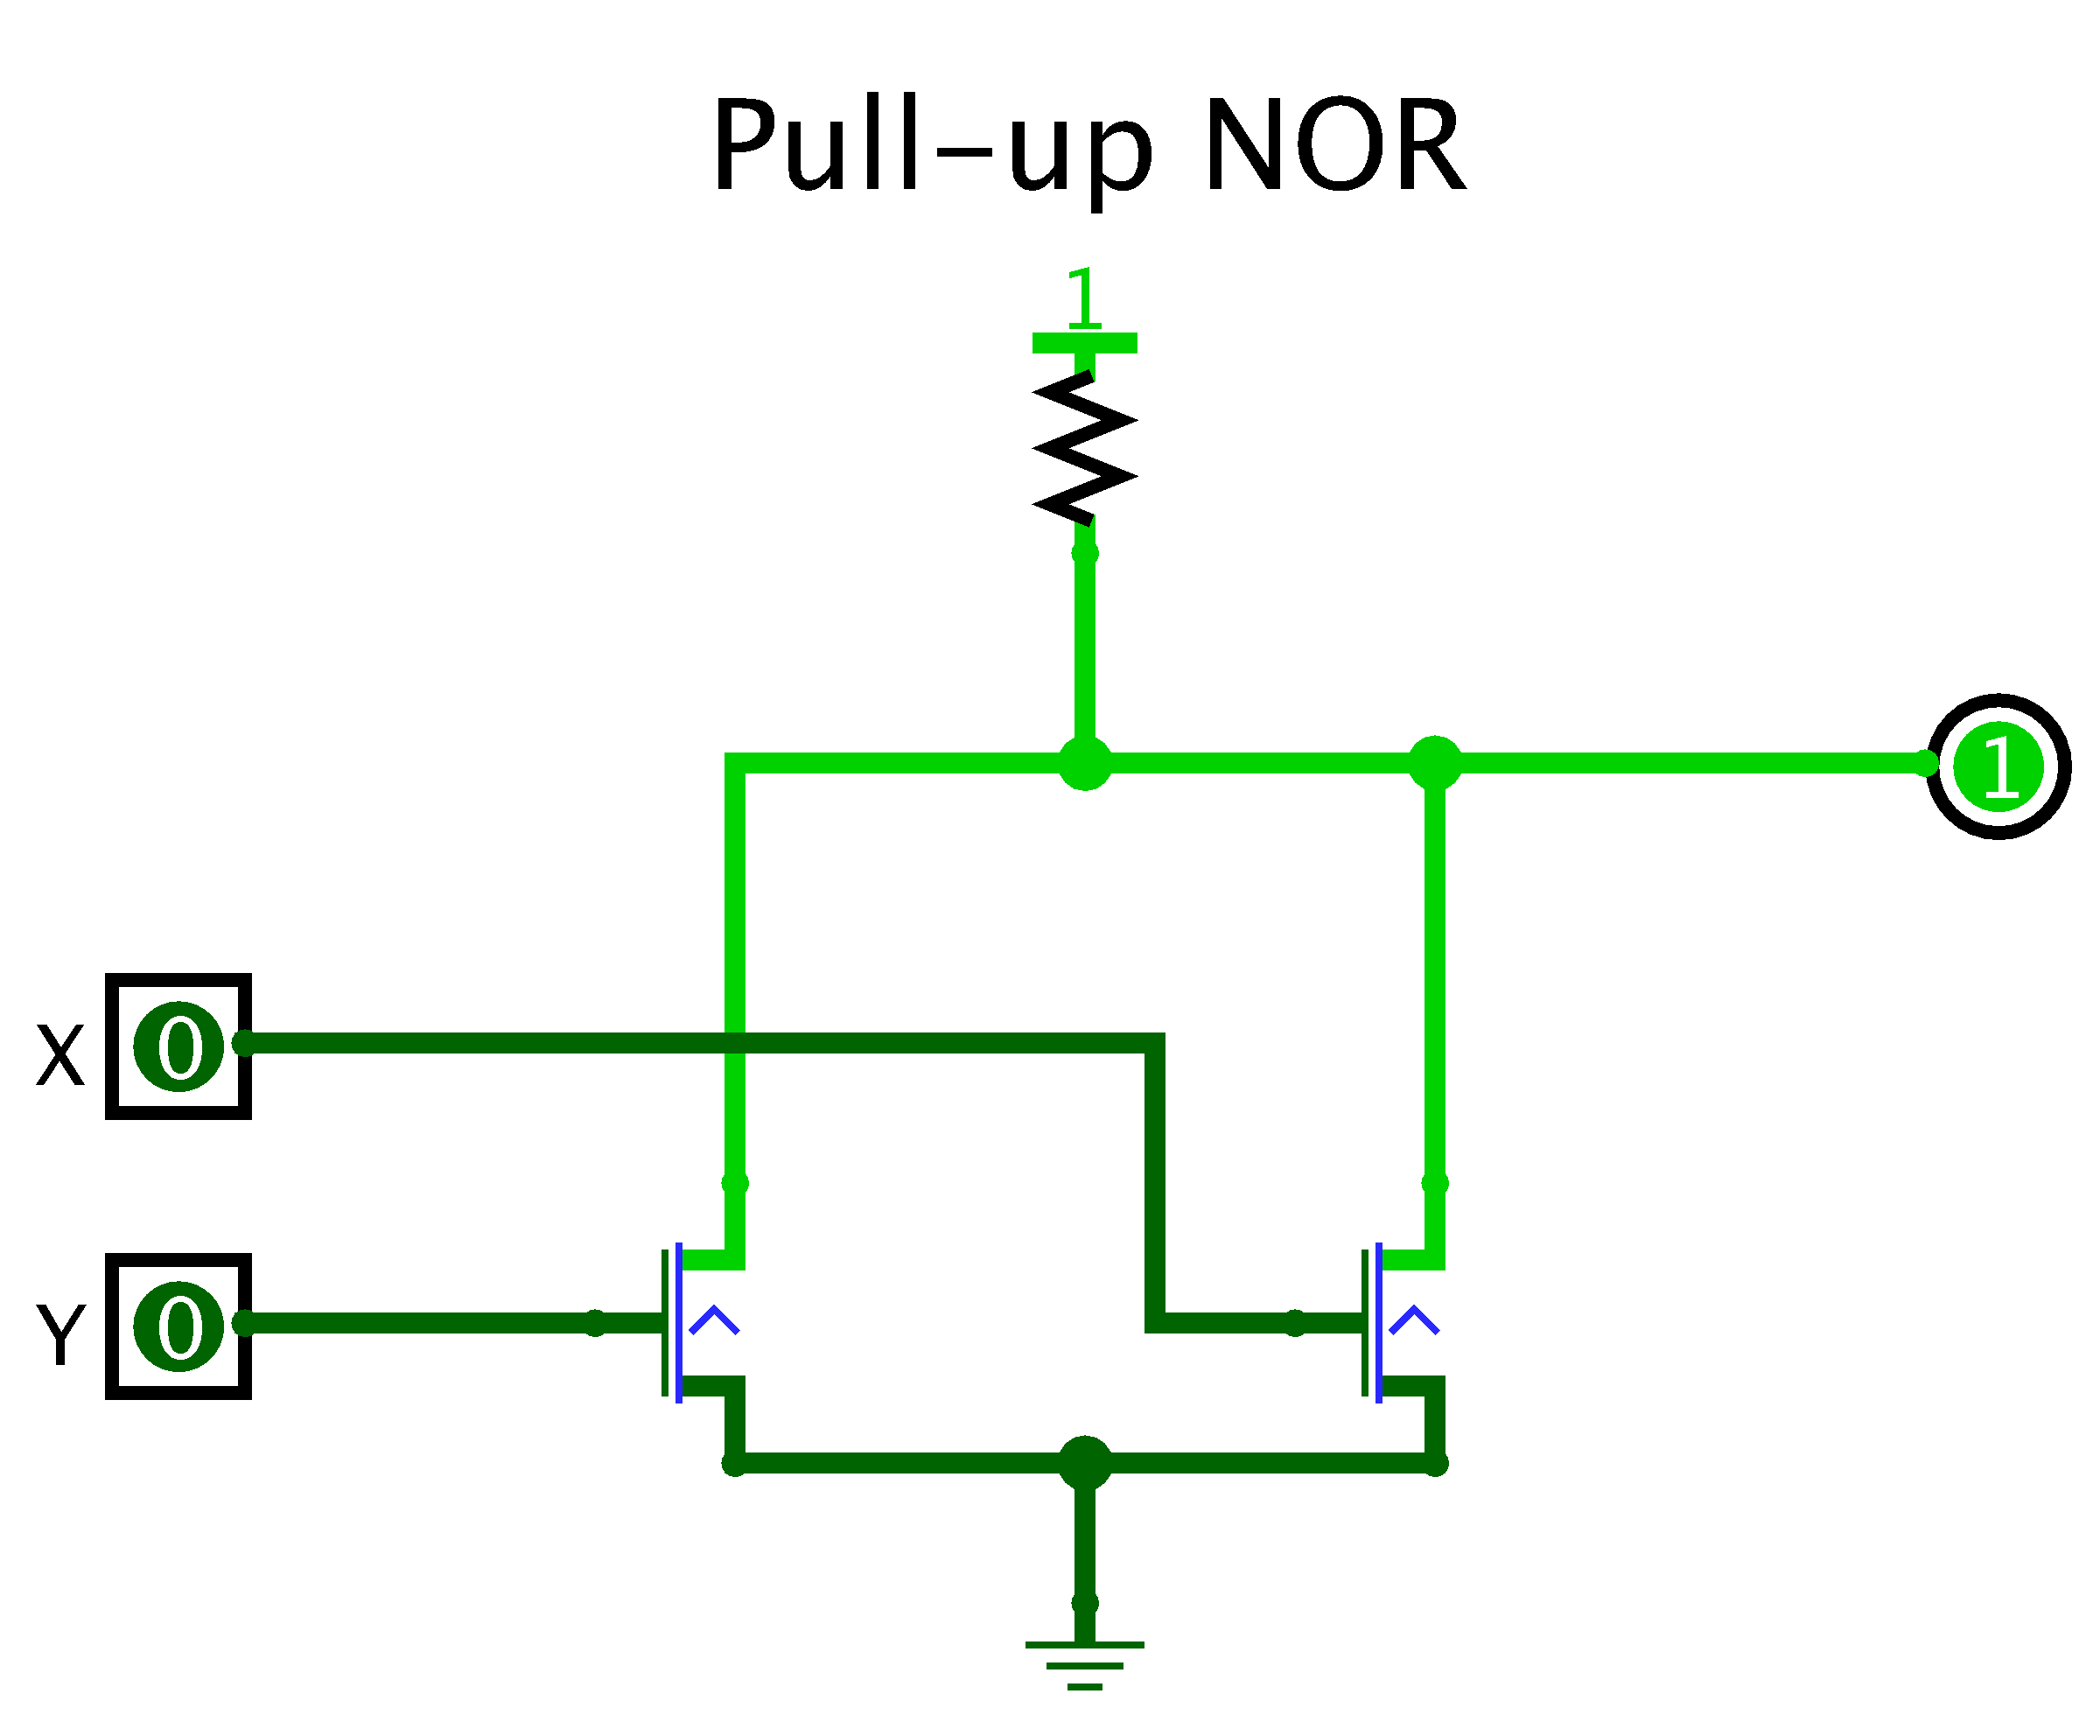 Csci 255 Building Logic Gates From Transistors Kinds Of Are I Npn Transistor Ii Pnp Pull Up And For Nor